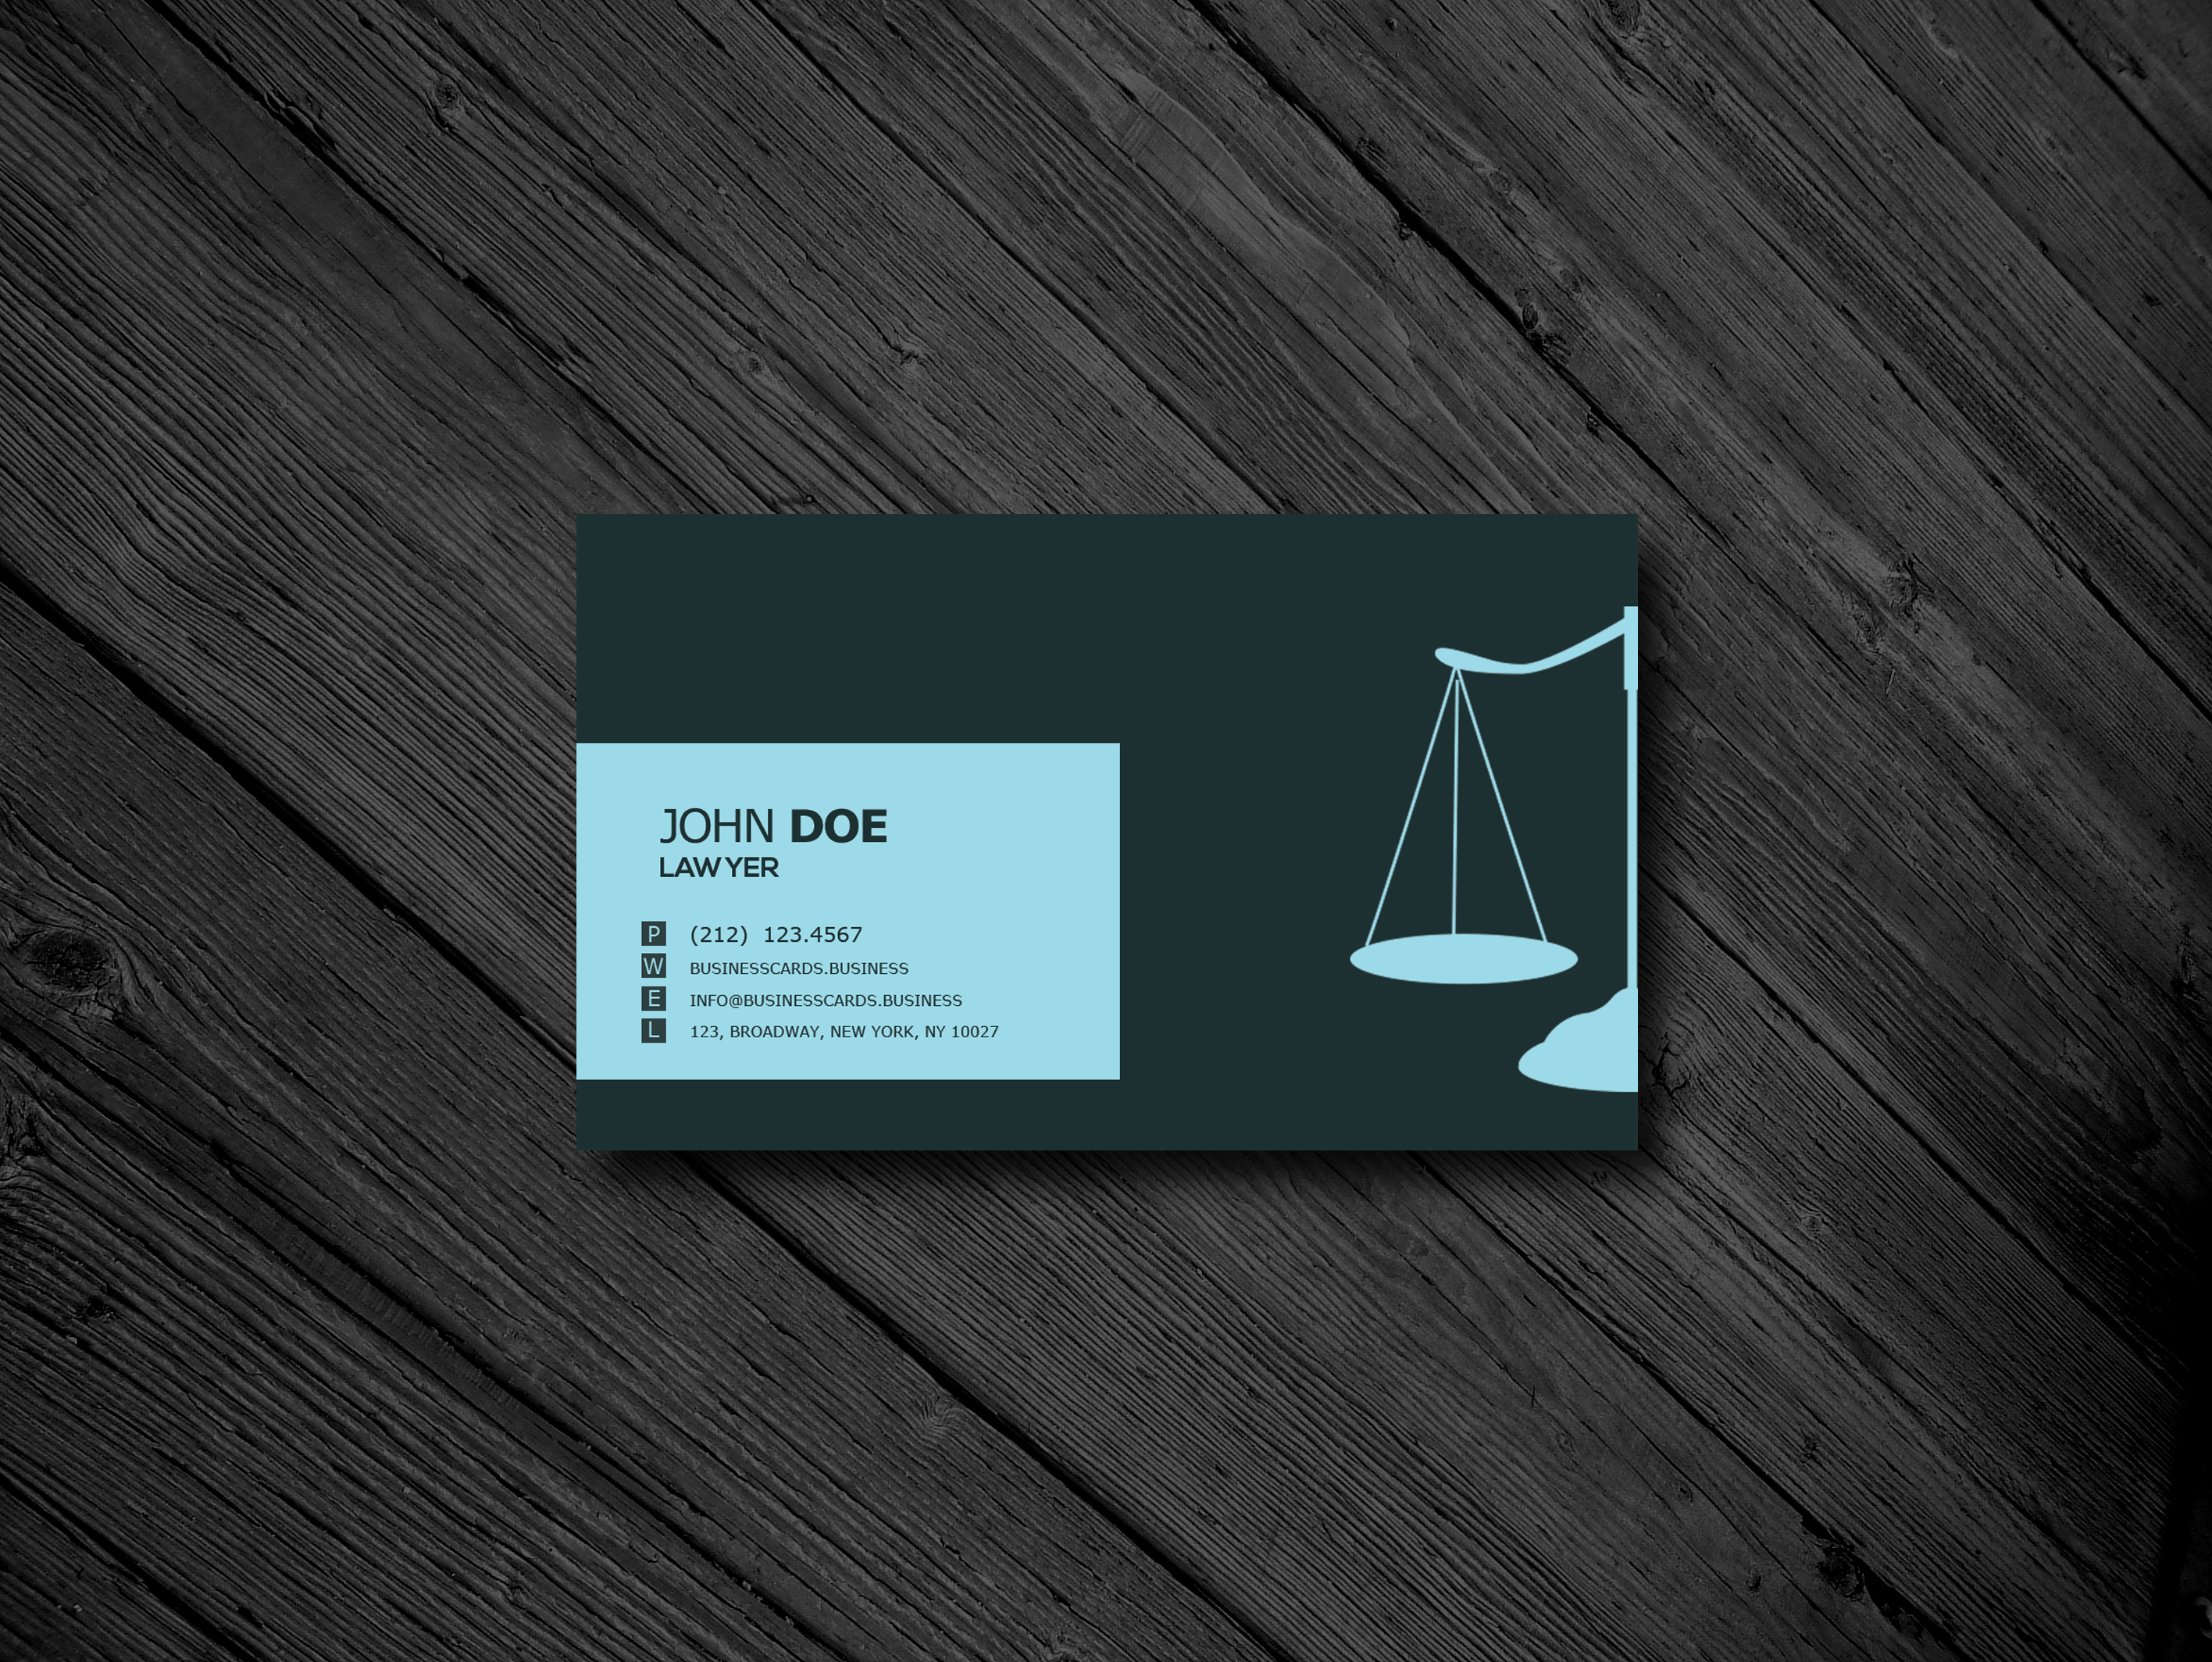 Free business card templates business cards templates free lawyer business card psd template cheaphphosting Image collections